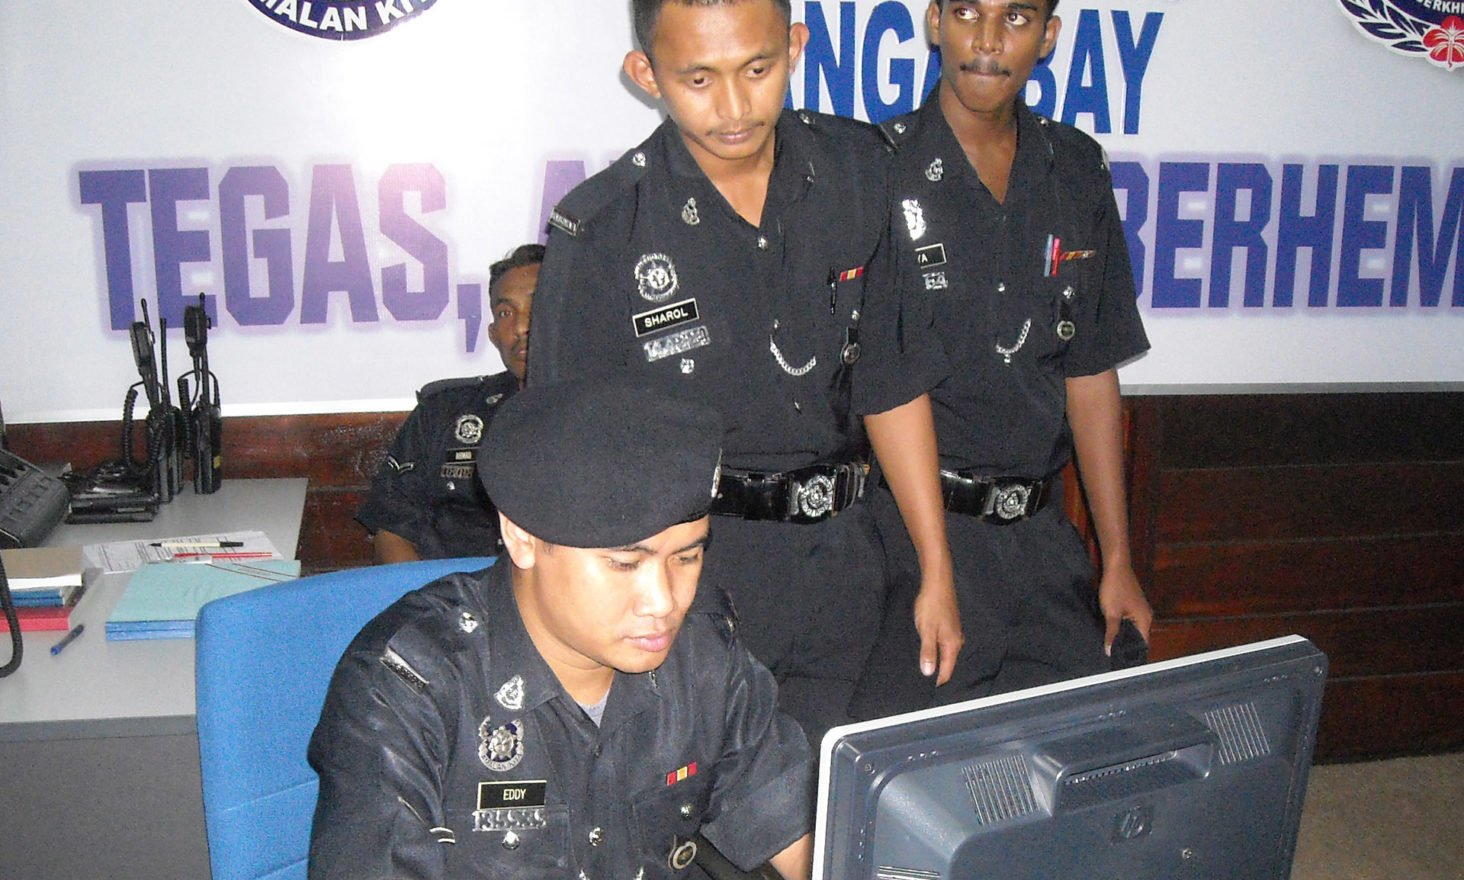 Malaysian police arrest Bitcoin mining equipment thieves